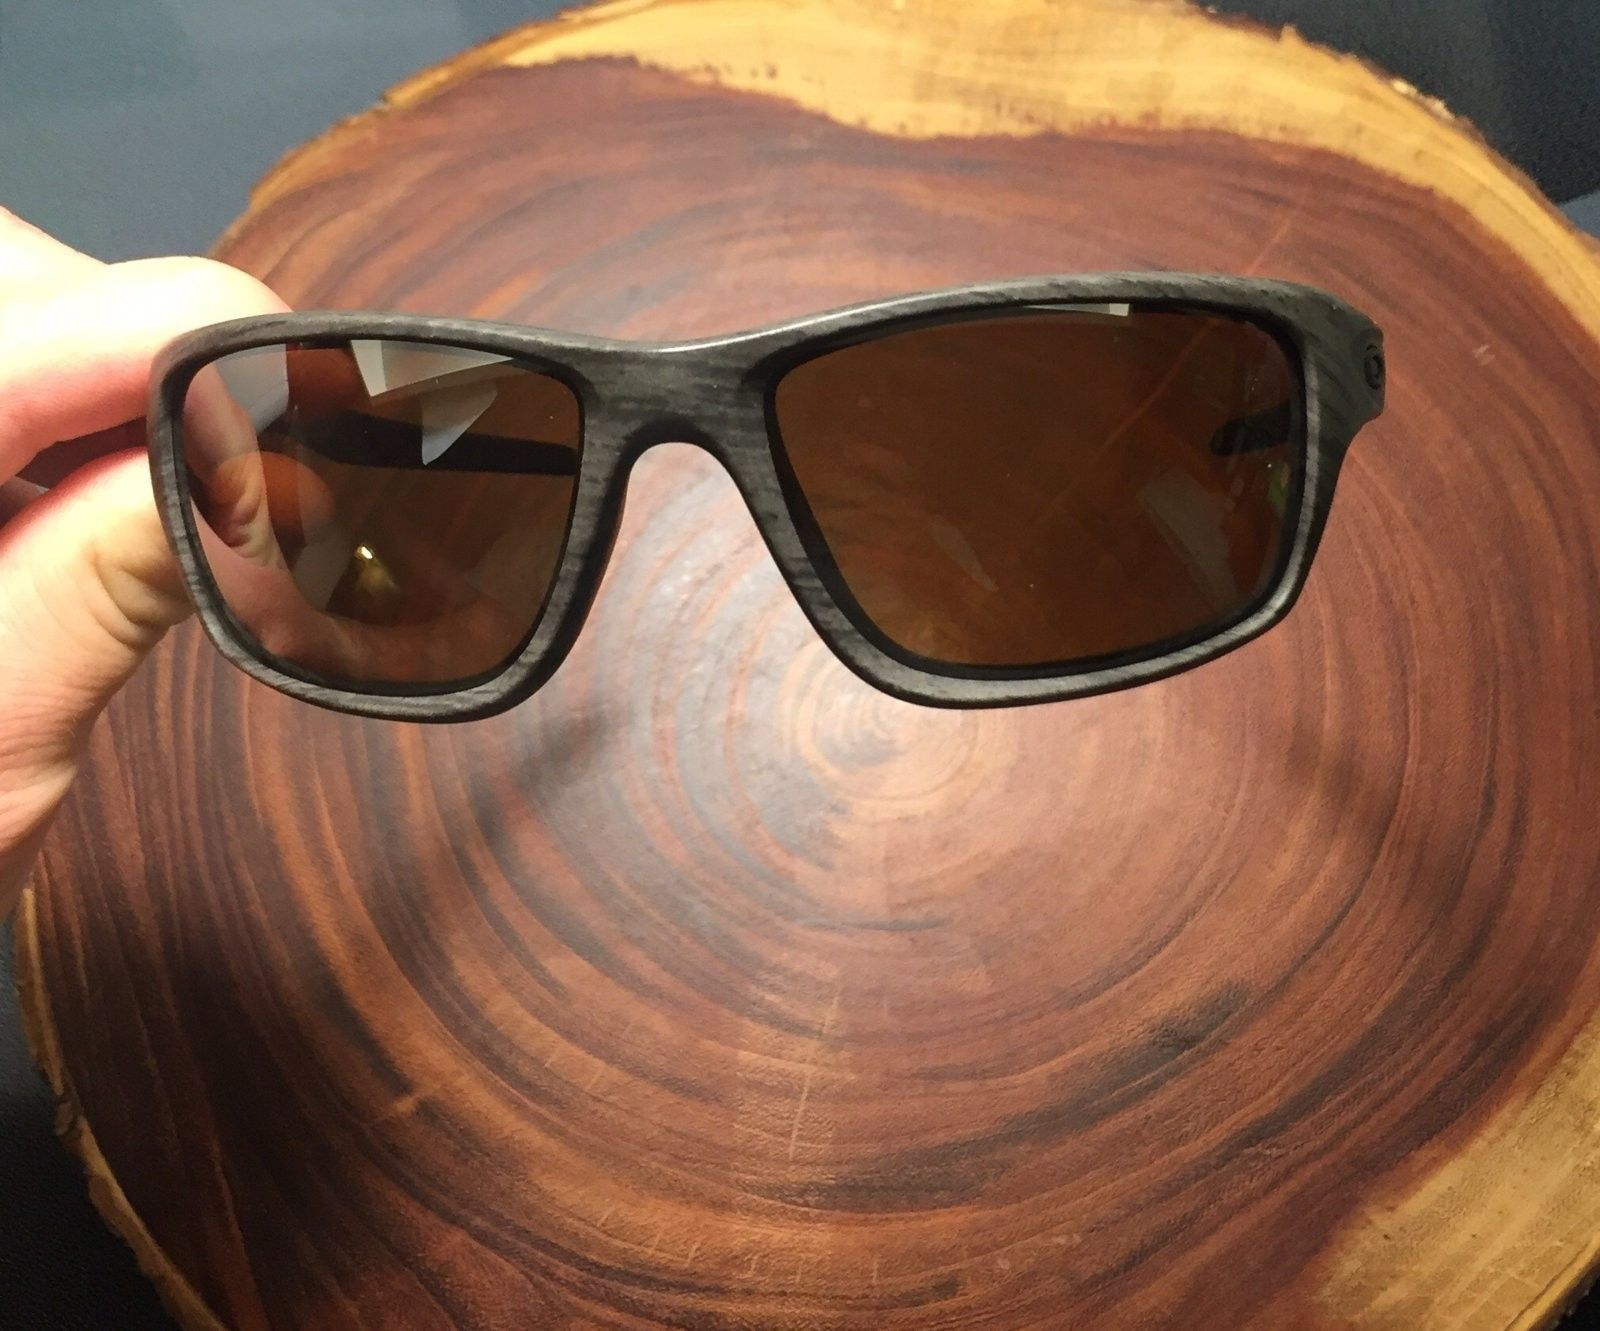 376455e2564 Opinions on grey Woodgrain vs. Matte Tortoise for casual everyday wear -  image.jpg